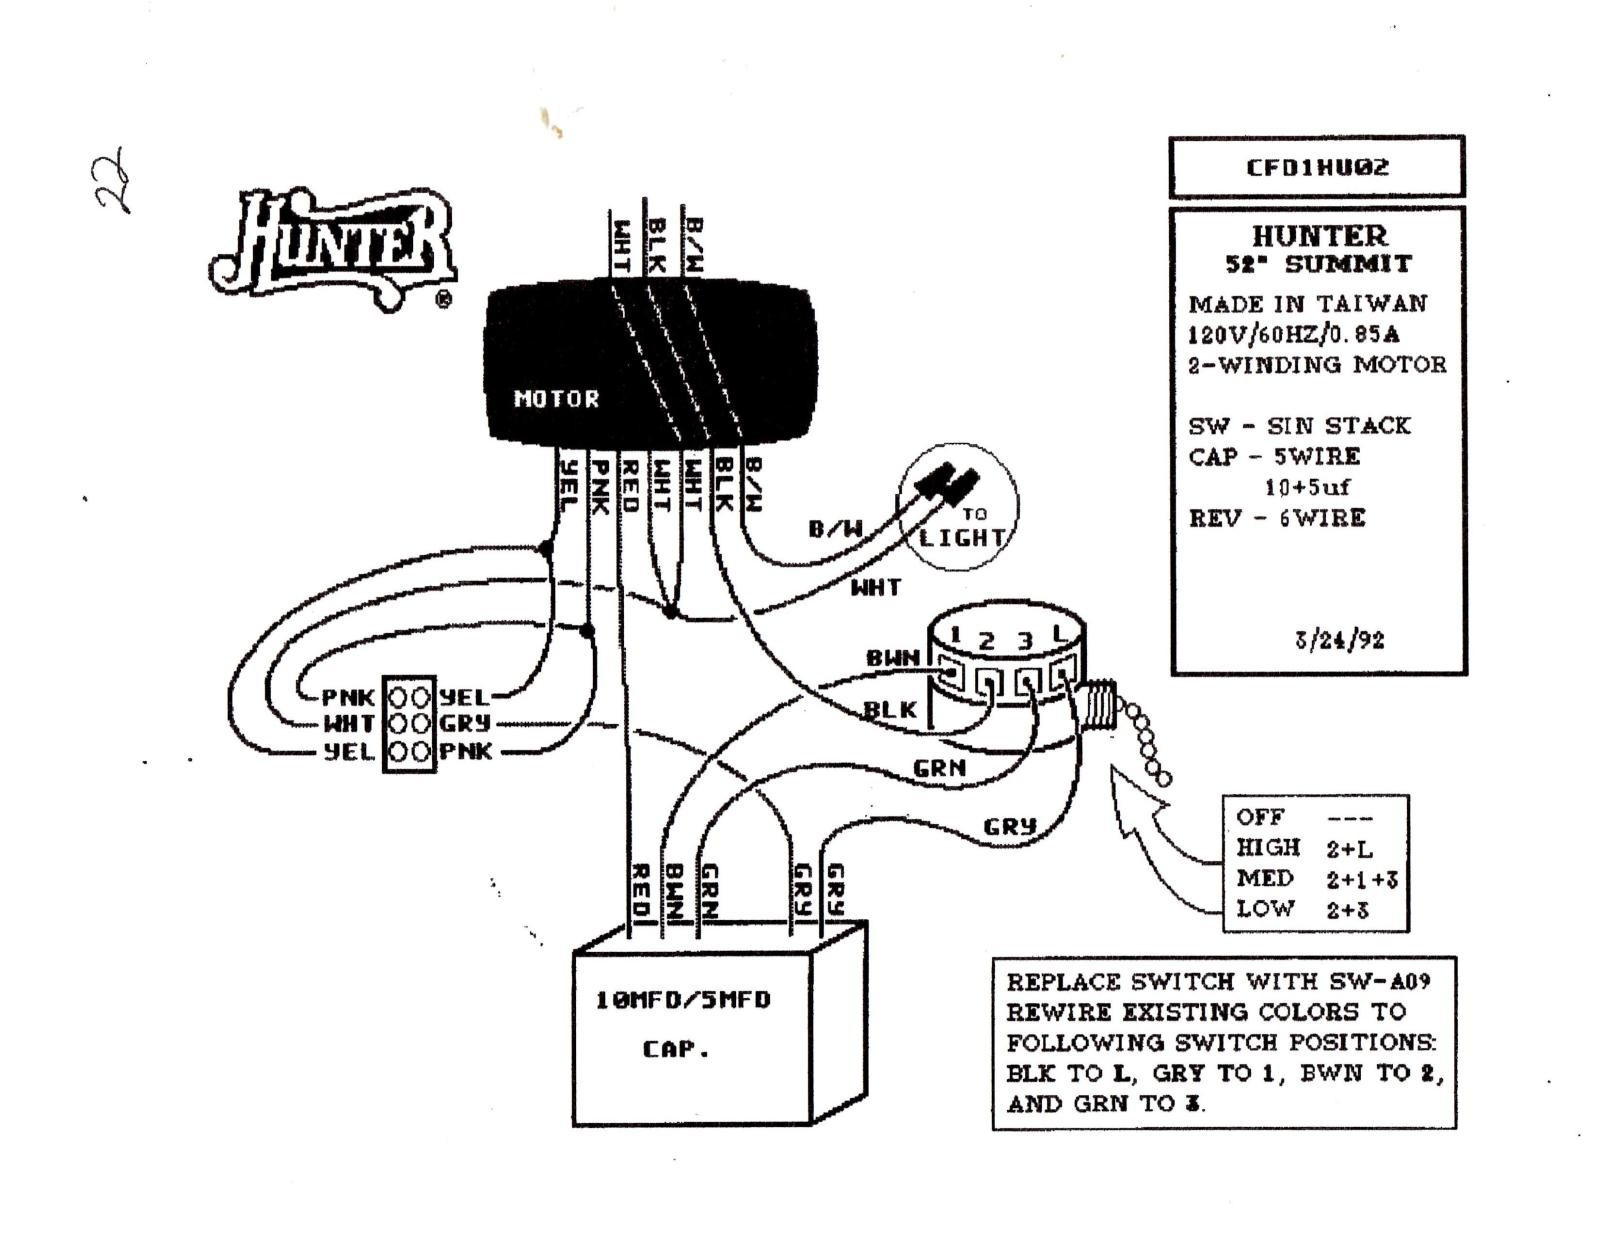 hampton bay ceiling fan wiring schematic Download-Wiring Diagram For Light And Fan Print Replacing A Ceiling Fan Pull Switch In Hampton Bay 3 Speed Wiring 15 12-c